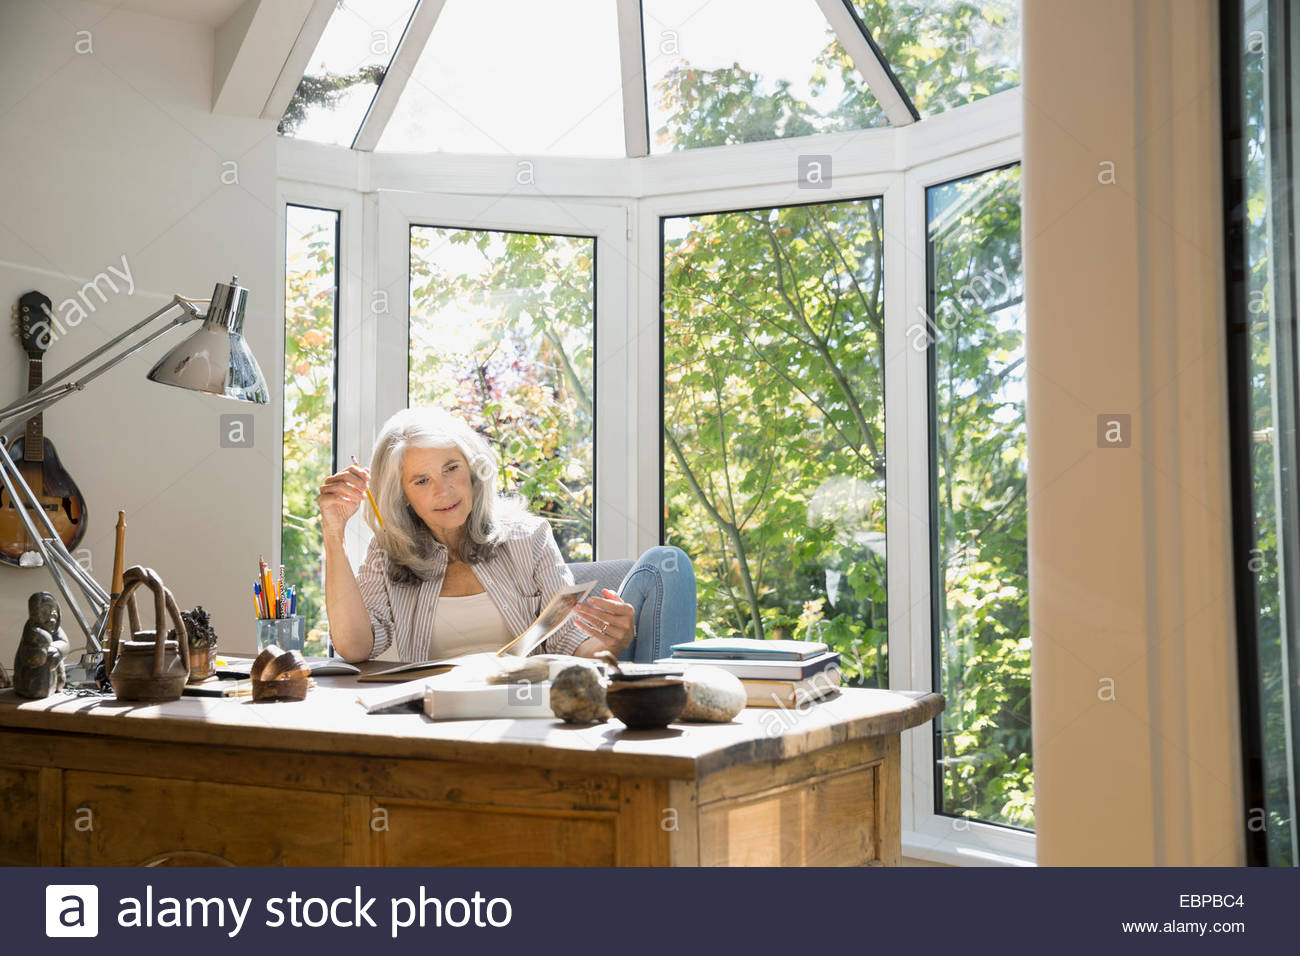 Senior woman reading book in home office - Stock Image